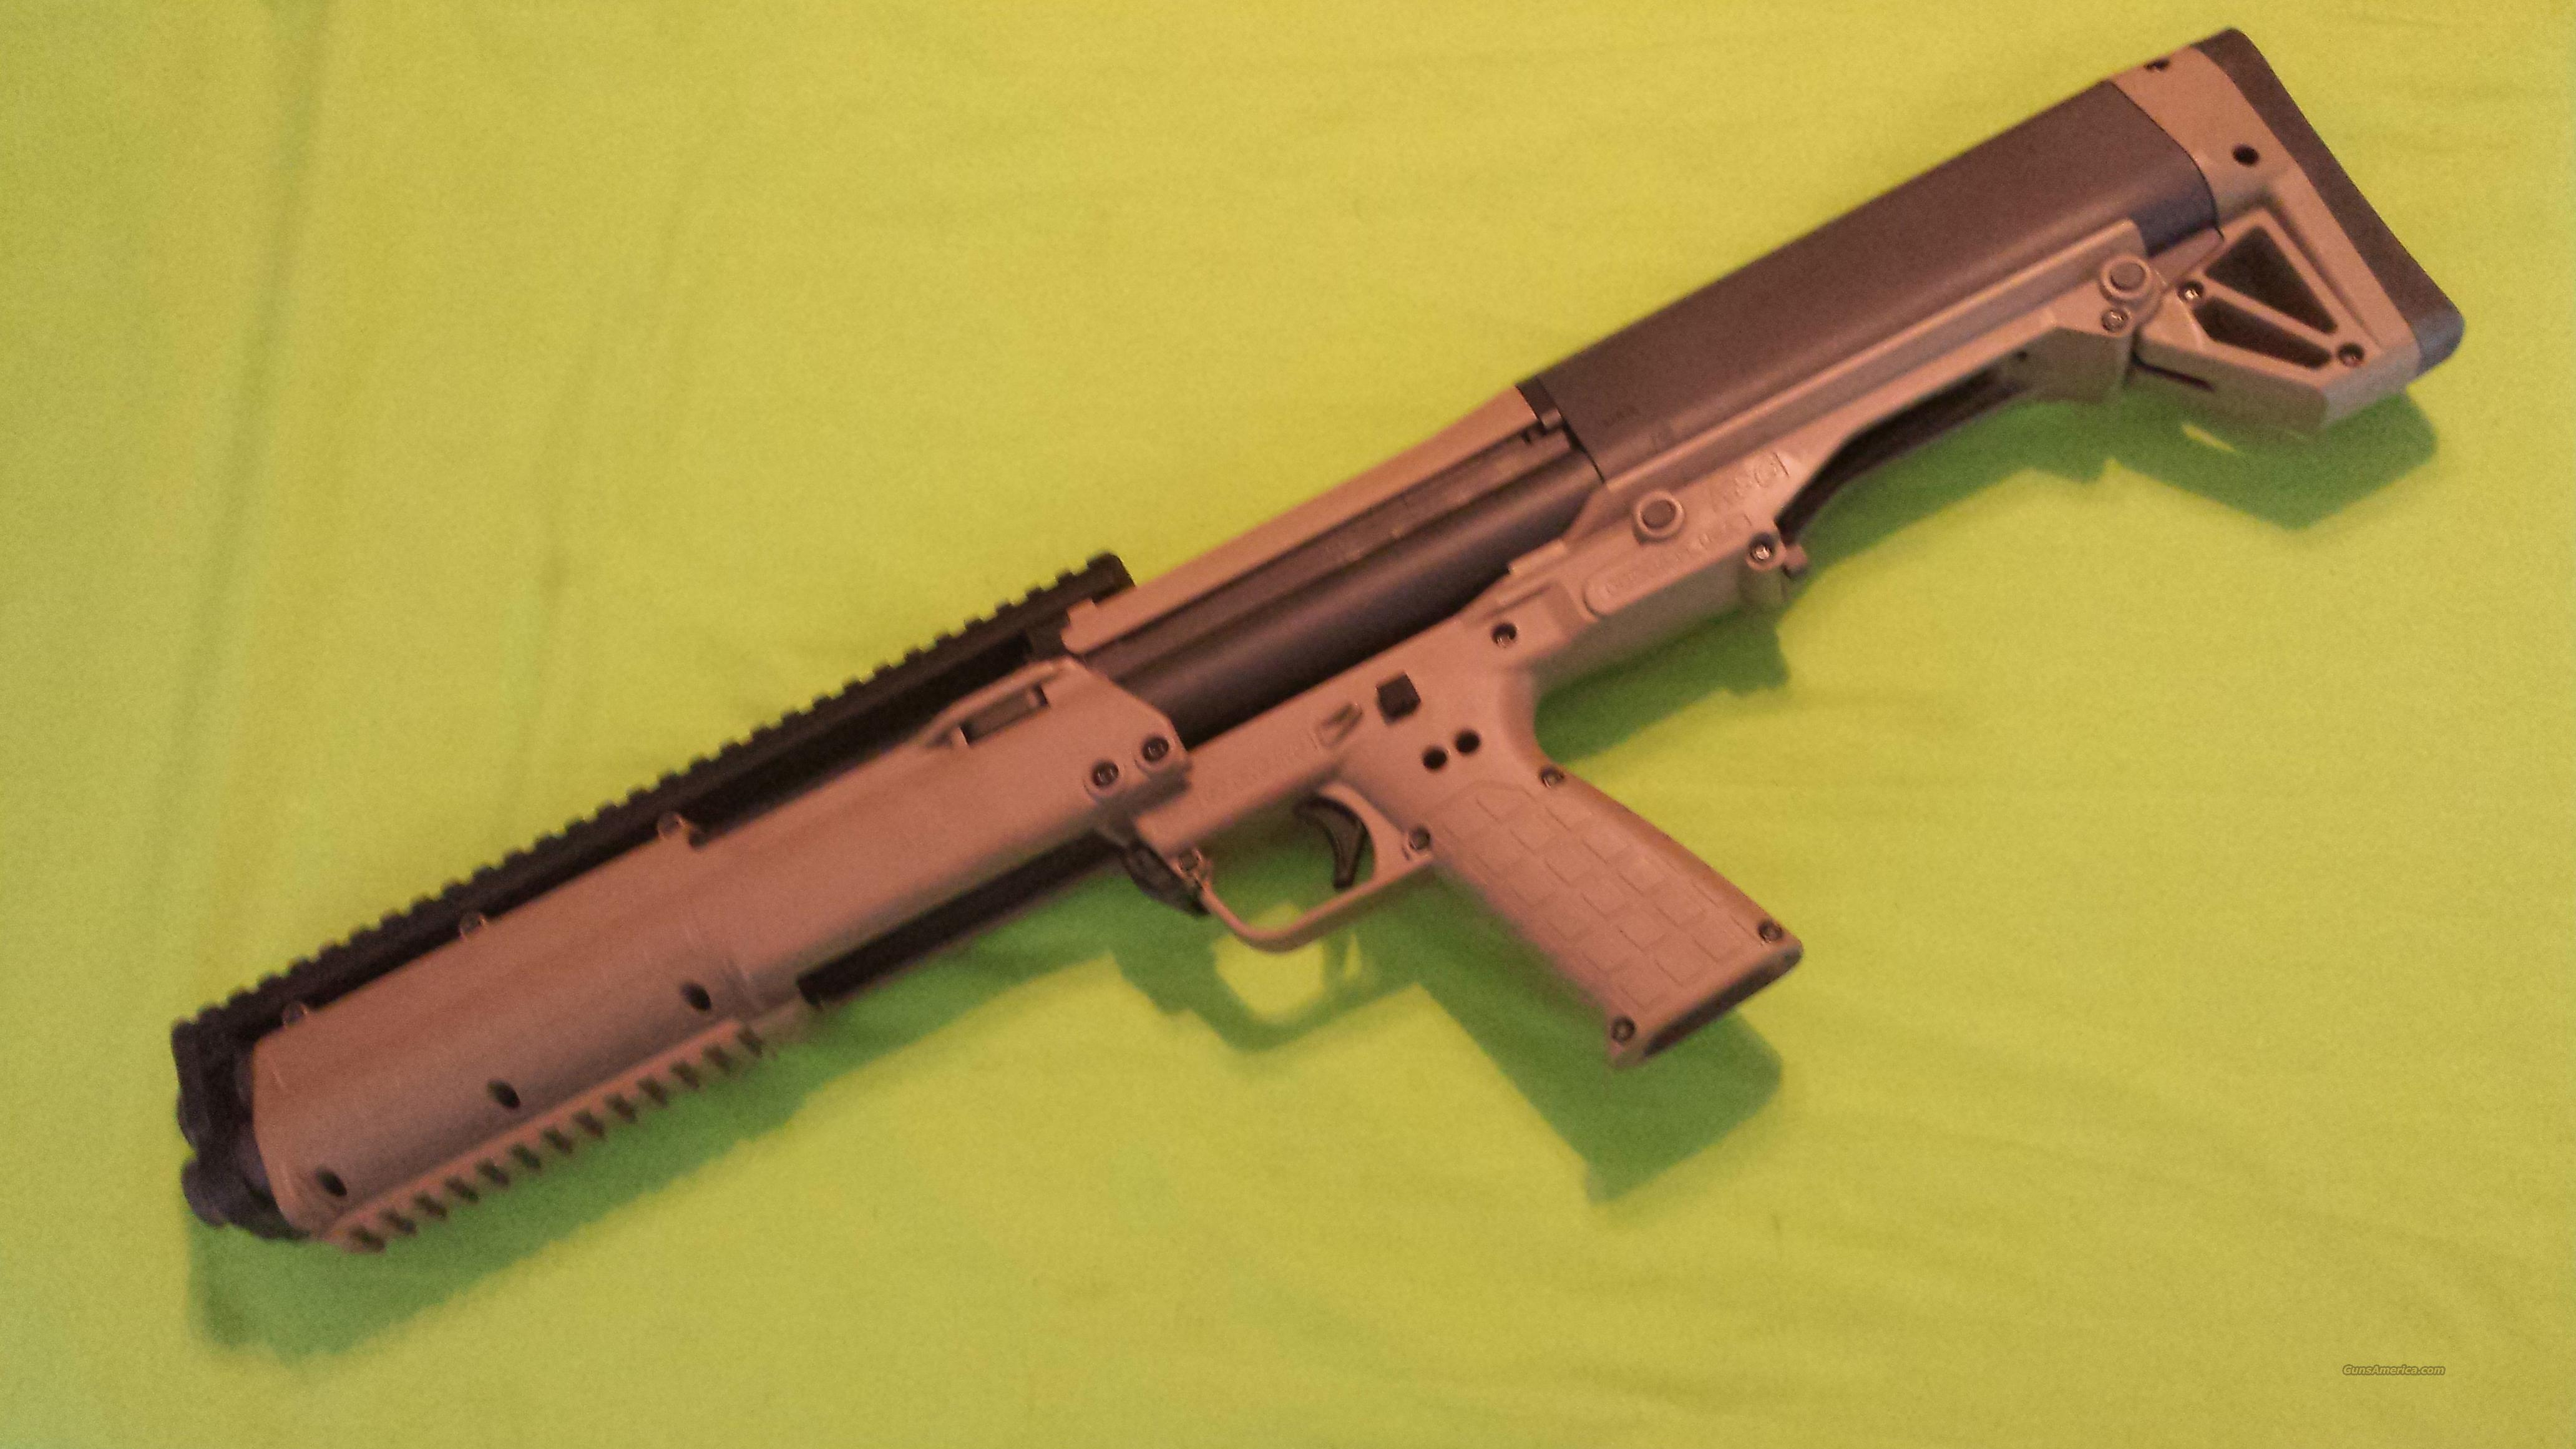 TAN Kel Tec KELTEC KSG Shotgun Factory New 14RD  Guns > Shotguns > Kel-Tec Shotguns > KSG